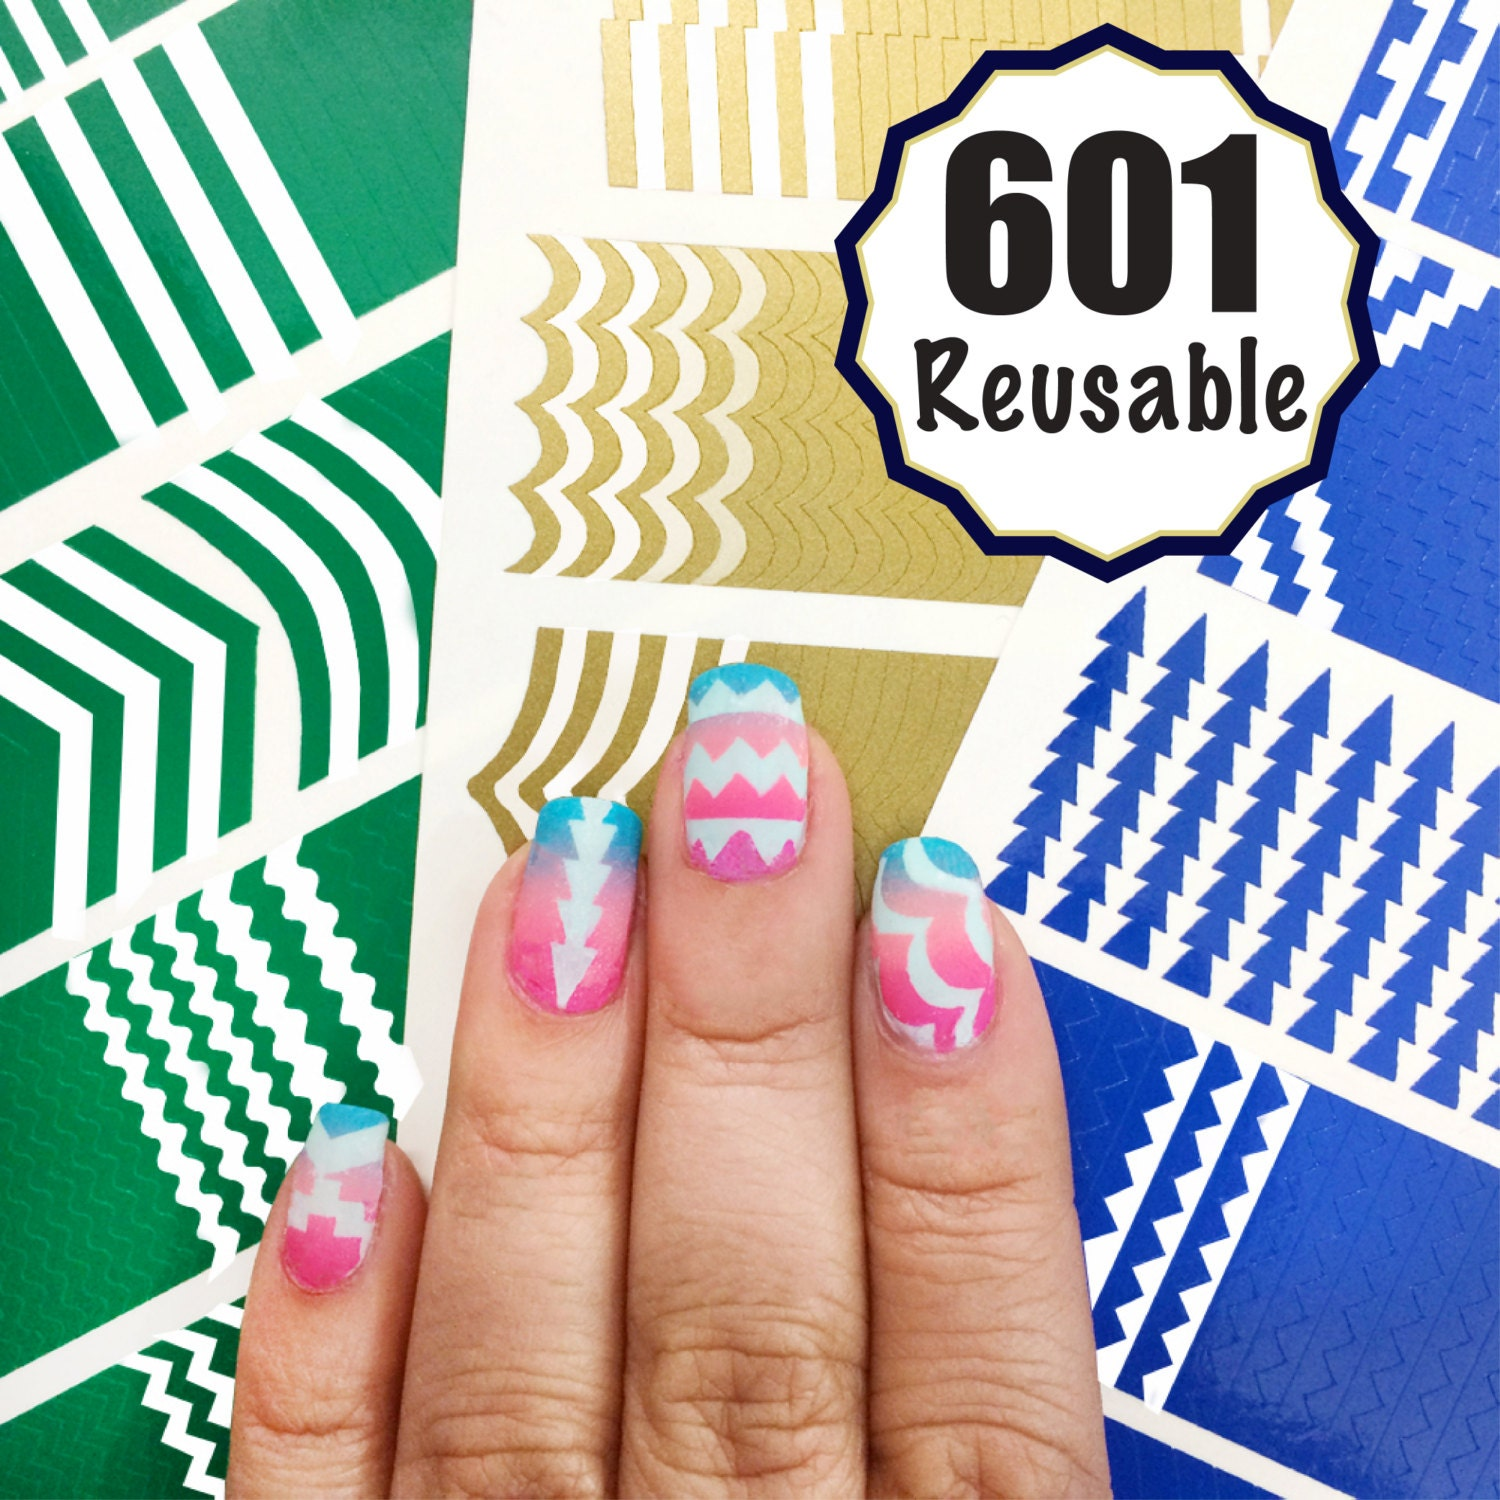 601 Reusable Nail Art Stencils Vinyl - 16 Different Shapes: Chevrons ...